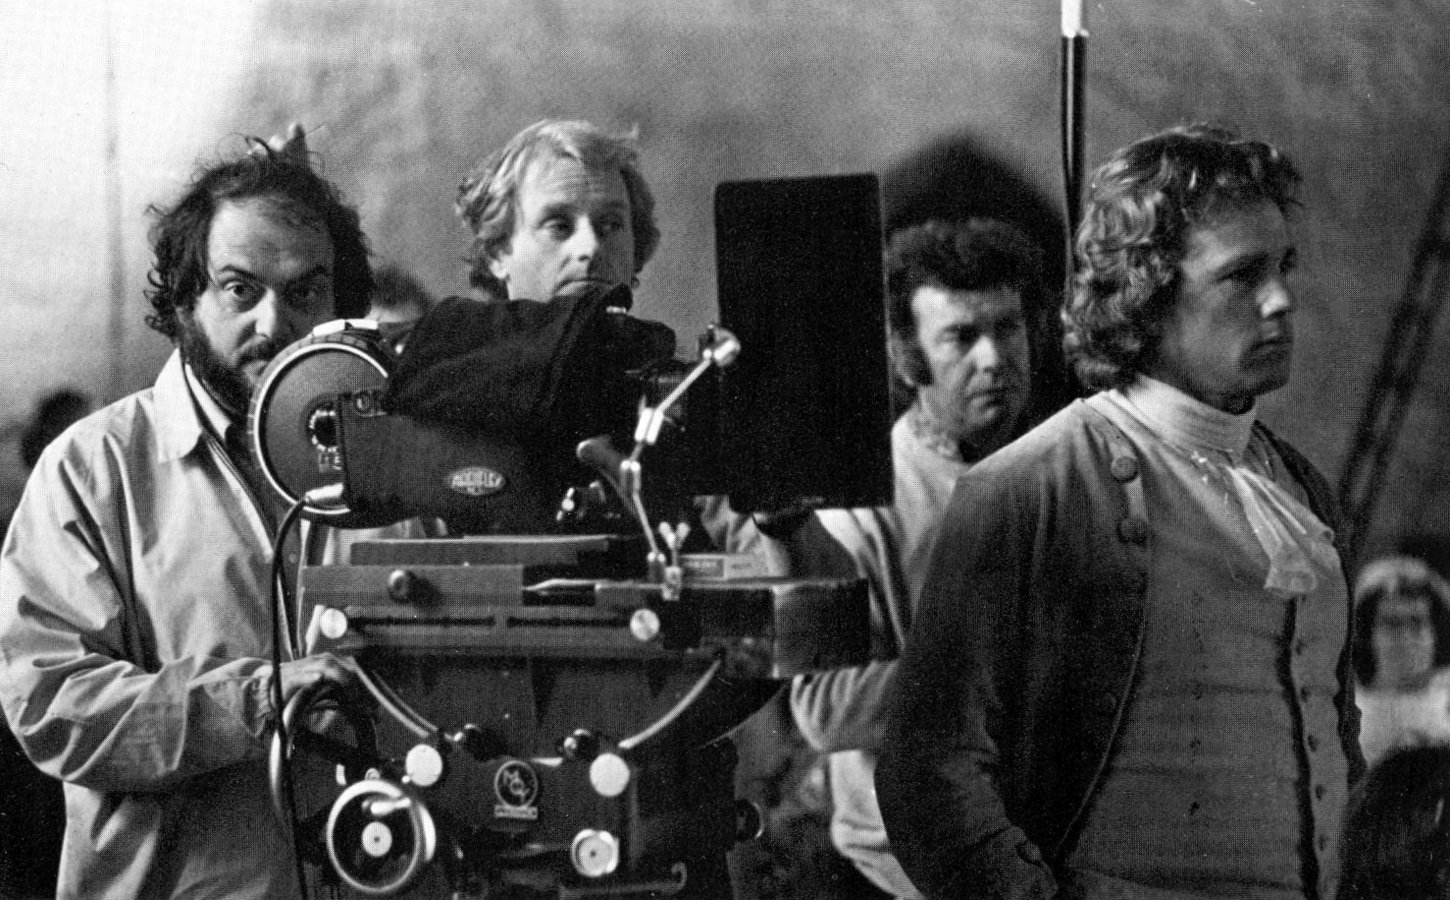 Stanley Kubrick and Ryan O'Neal on the set of Barry Lyndon, 1974